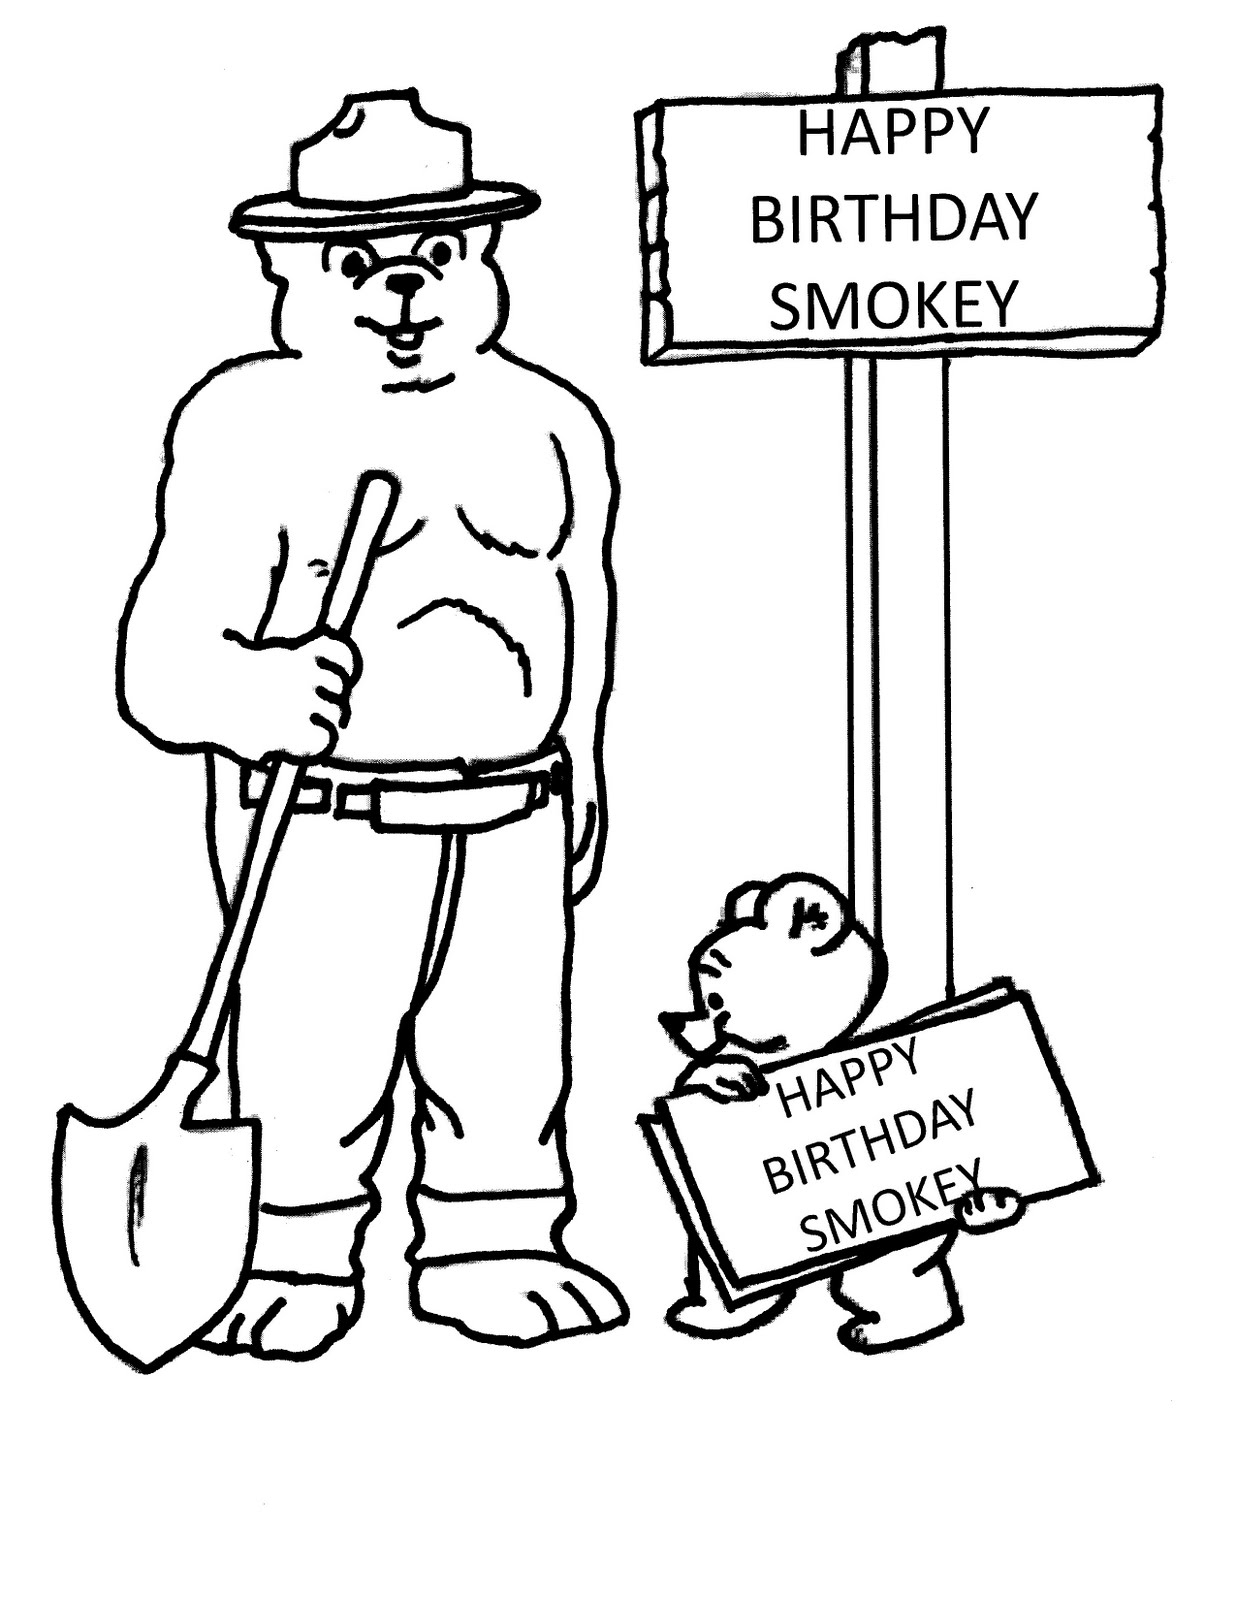 smokey the bear coloring pages smokey the bear coloring page bear coloring pages pages smokey coloring the bear